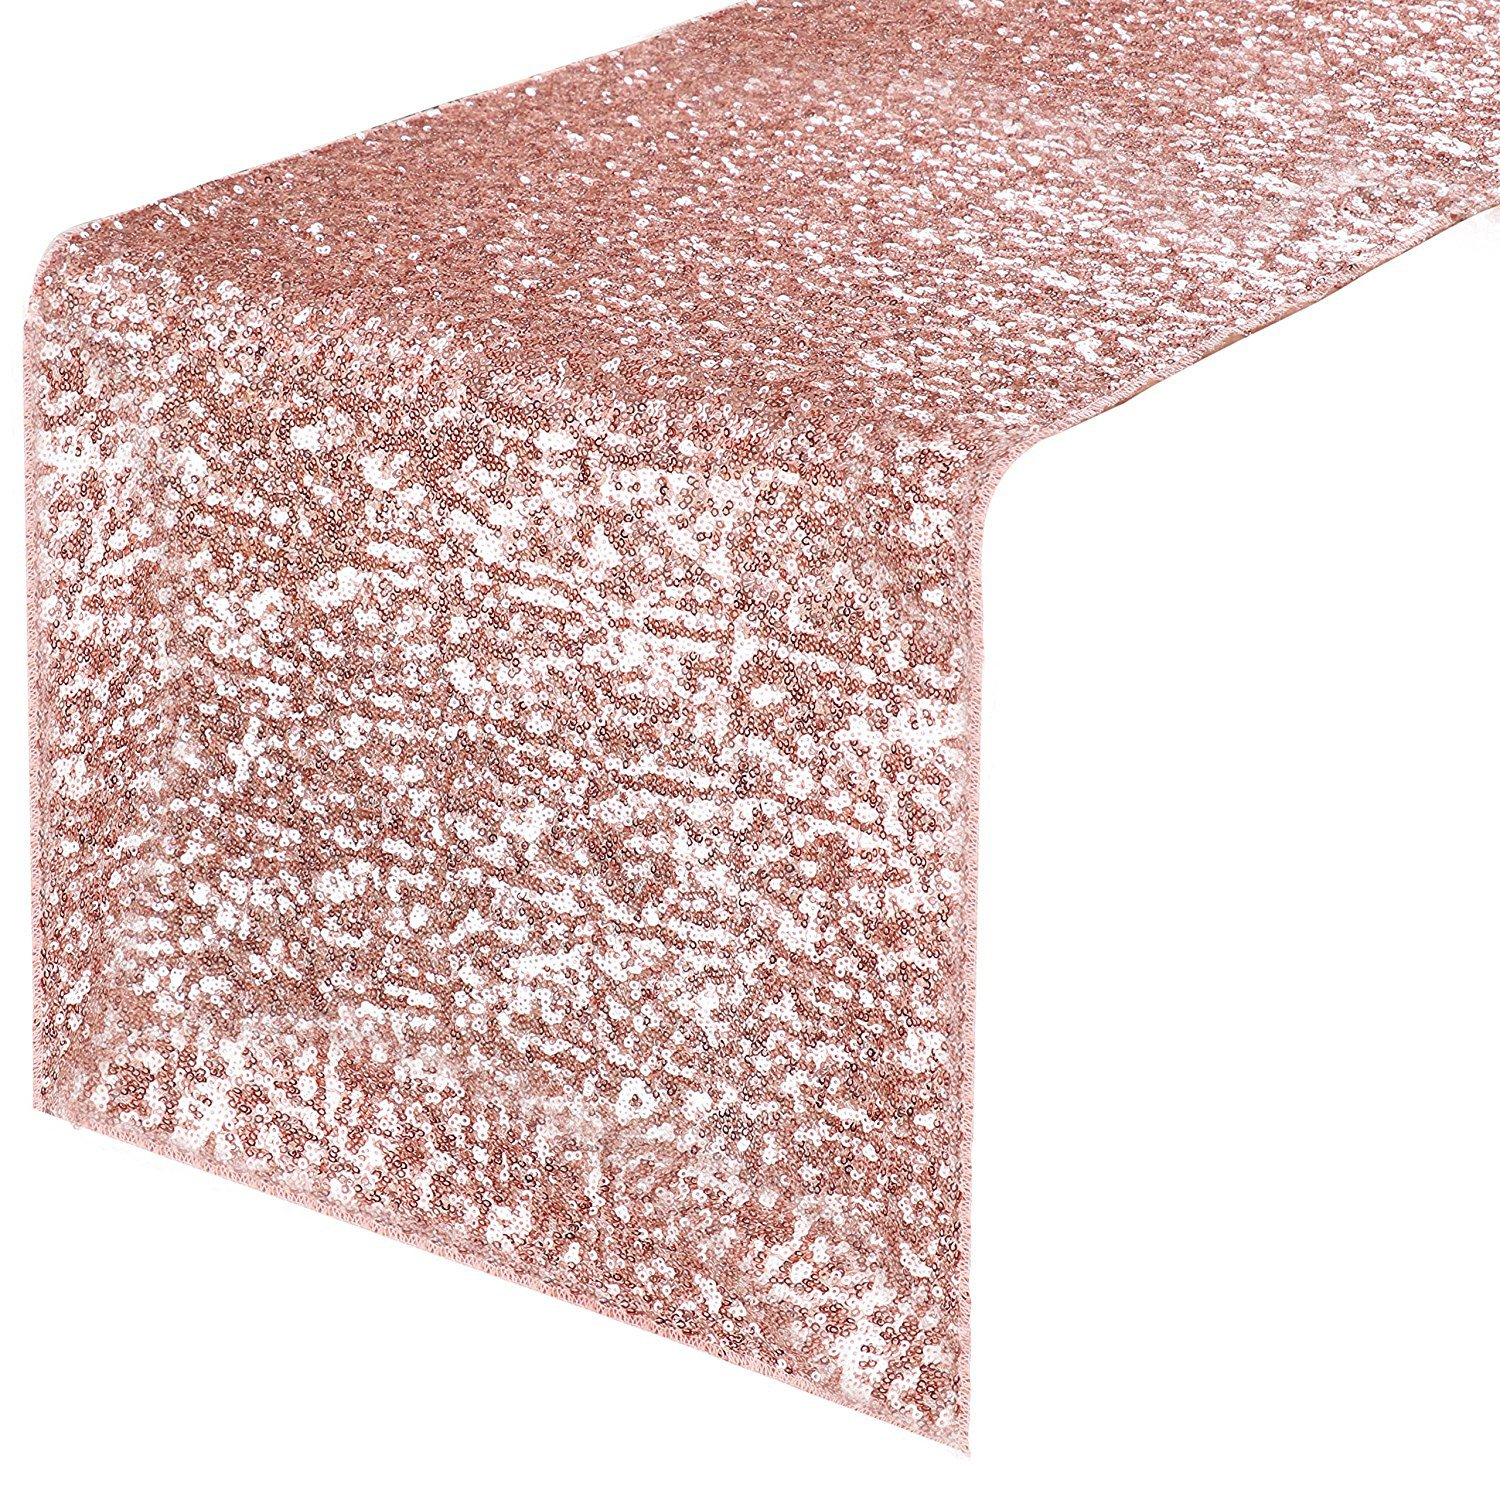 """PONY DANCE Table Runner Sequins - Sparkling Glitter Decorative Luxurious Table Runner for Event Weddings/Birthday/Christmas and Holidays, 14"""" x 108"""", Pink, 1 PC"""